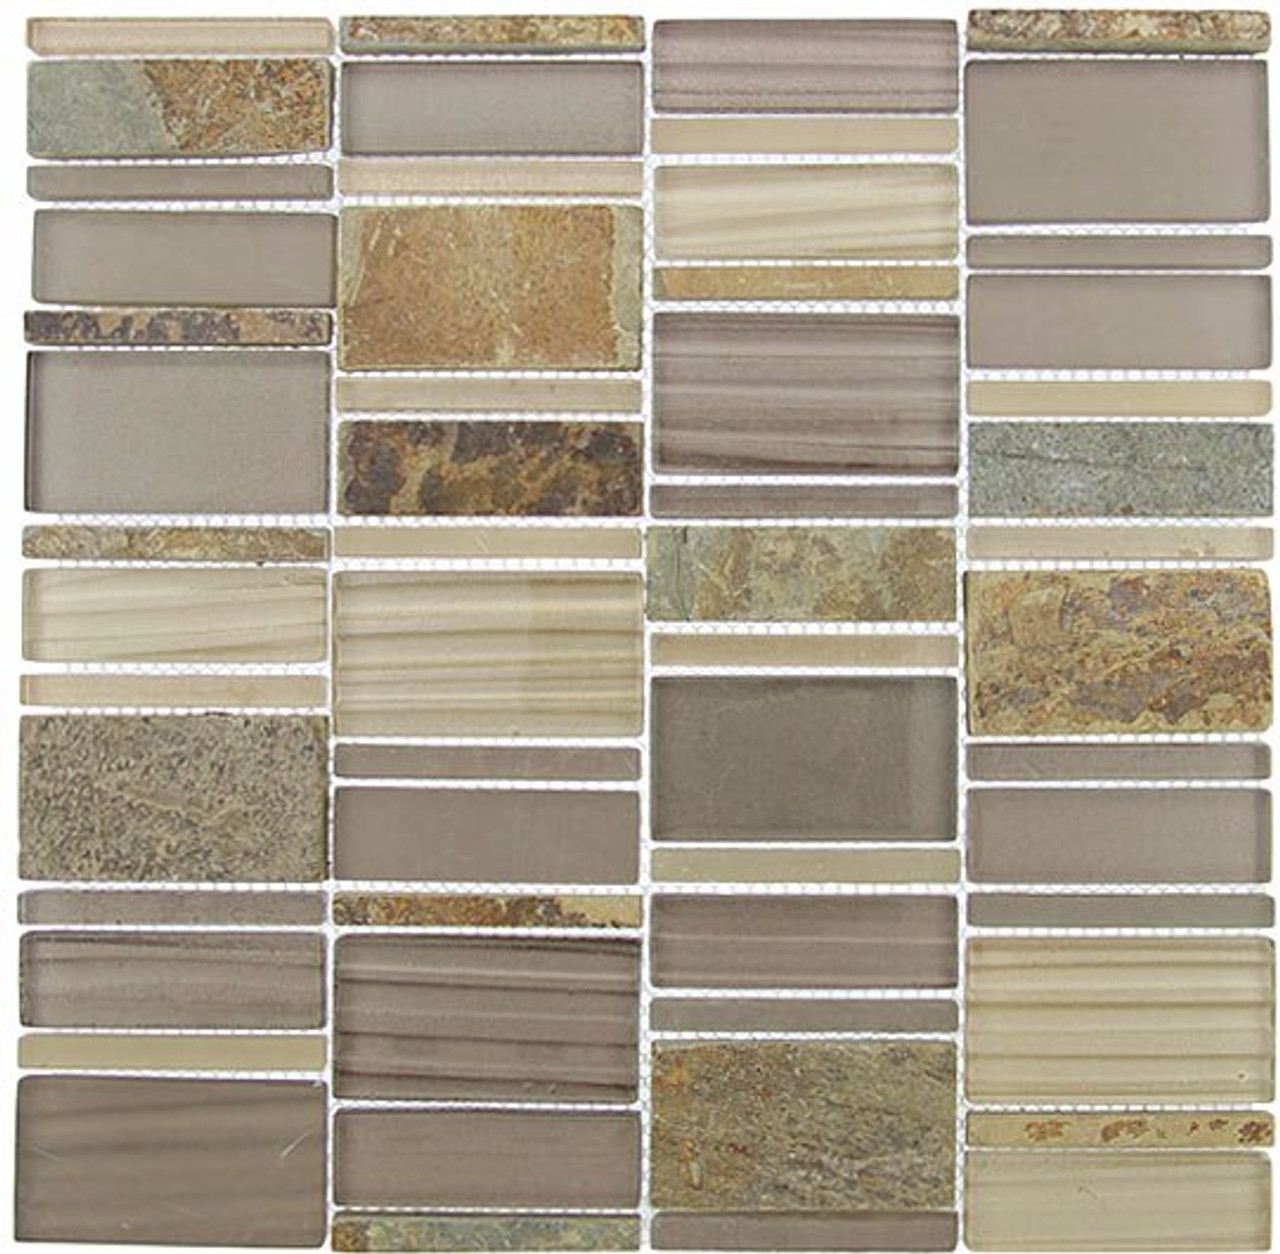 Bella Glass Tiles Corrugated Scapes Series Urban Pollen CSS-125